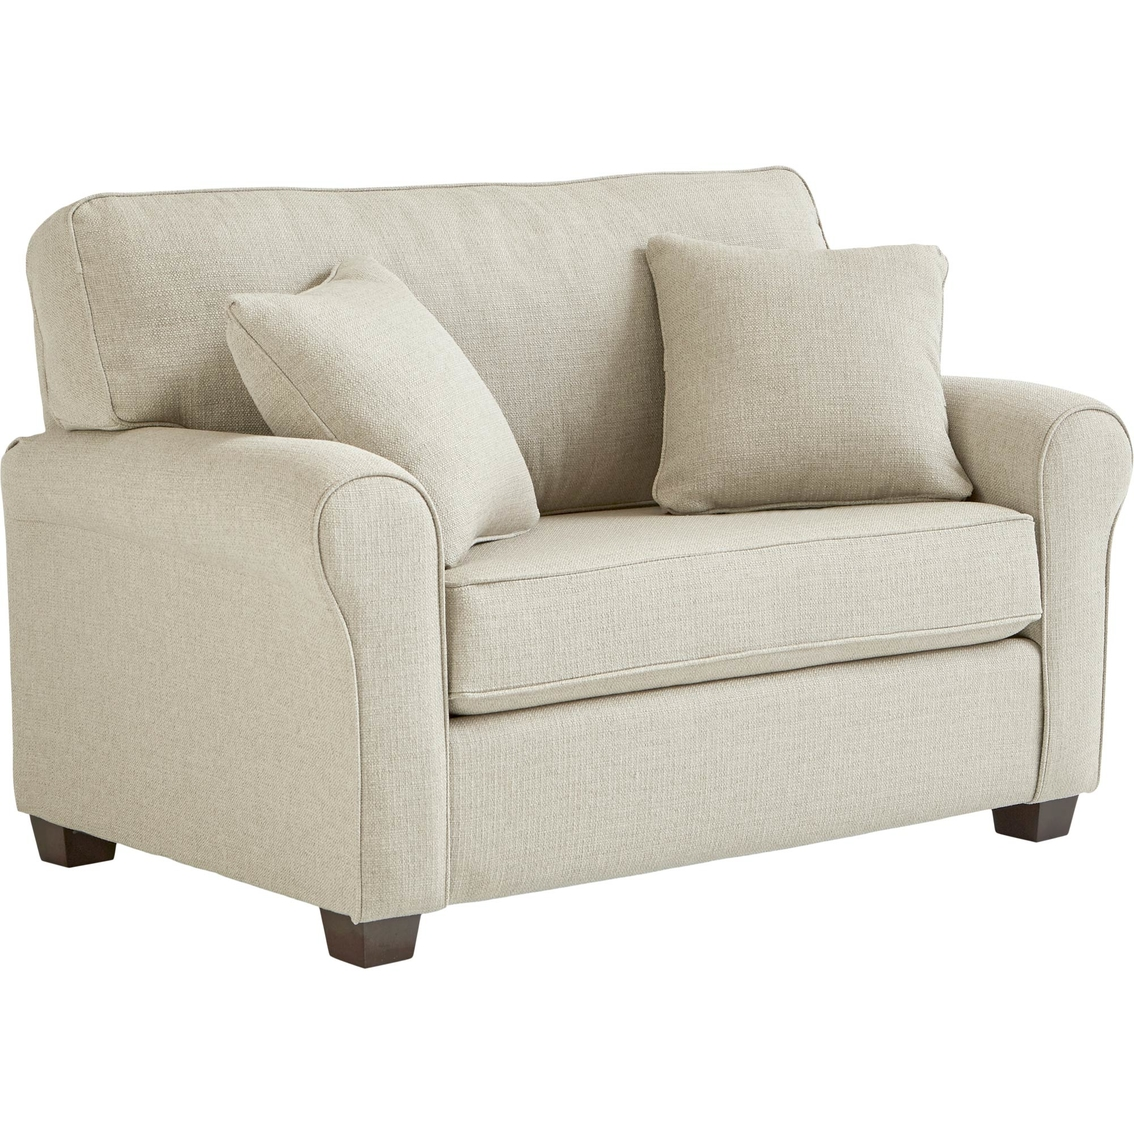 Best Home Shannon Twin Sleeper | Sofas & Couches | Home ...